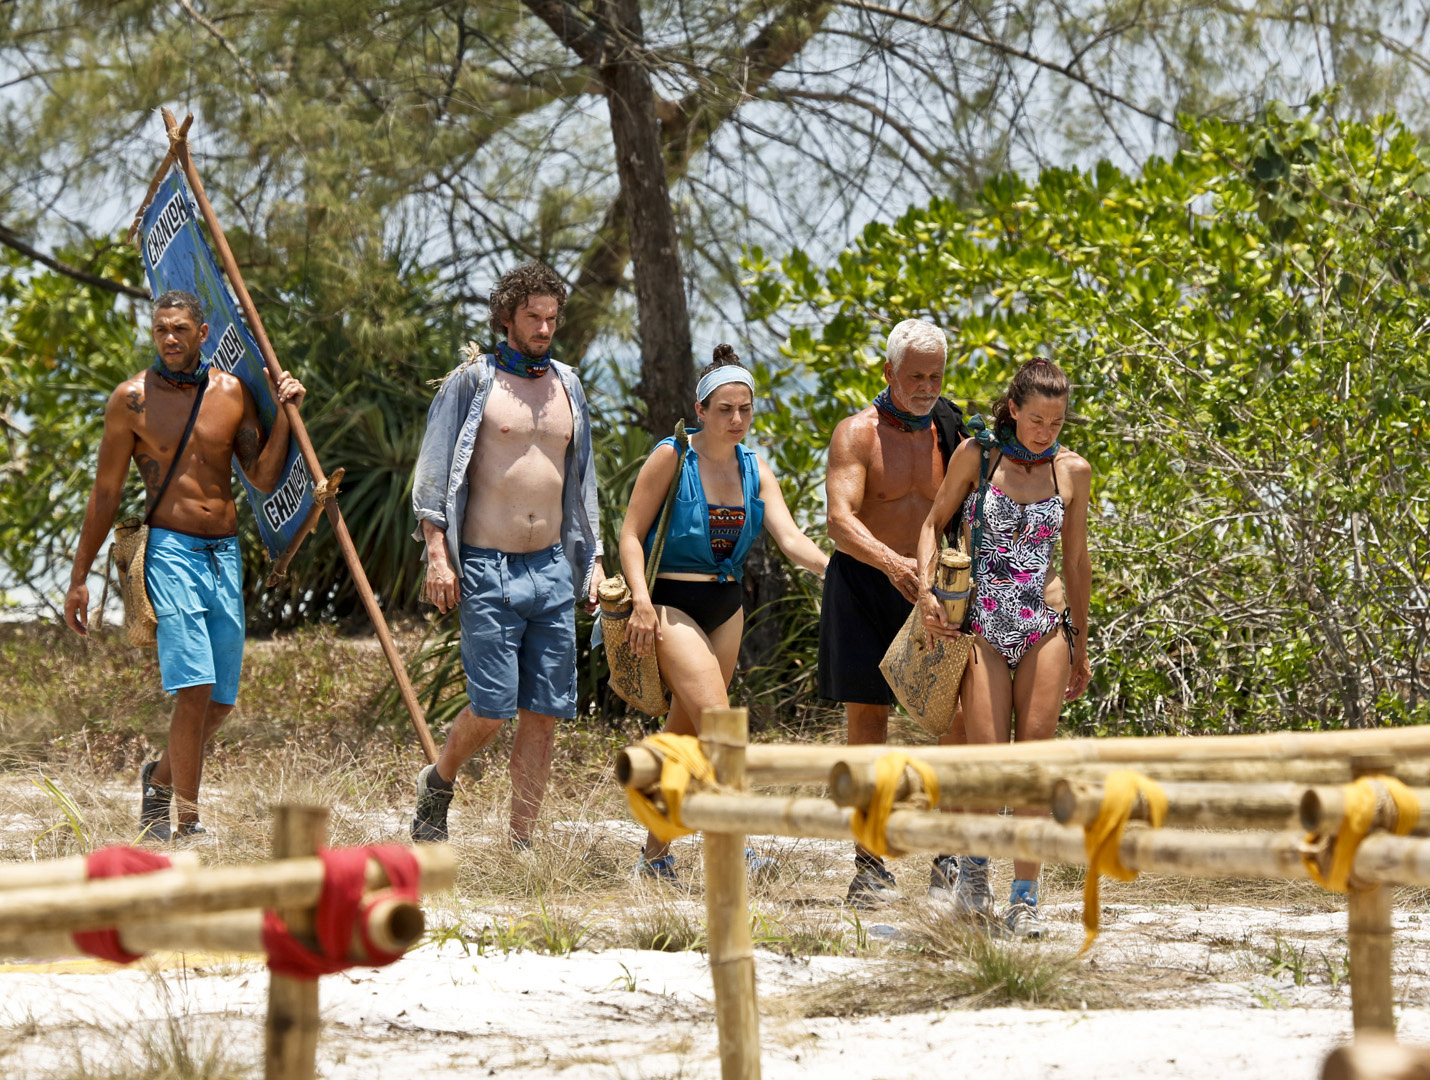 The most punishing season of Survivor takes its toll on the castaways.